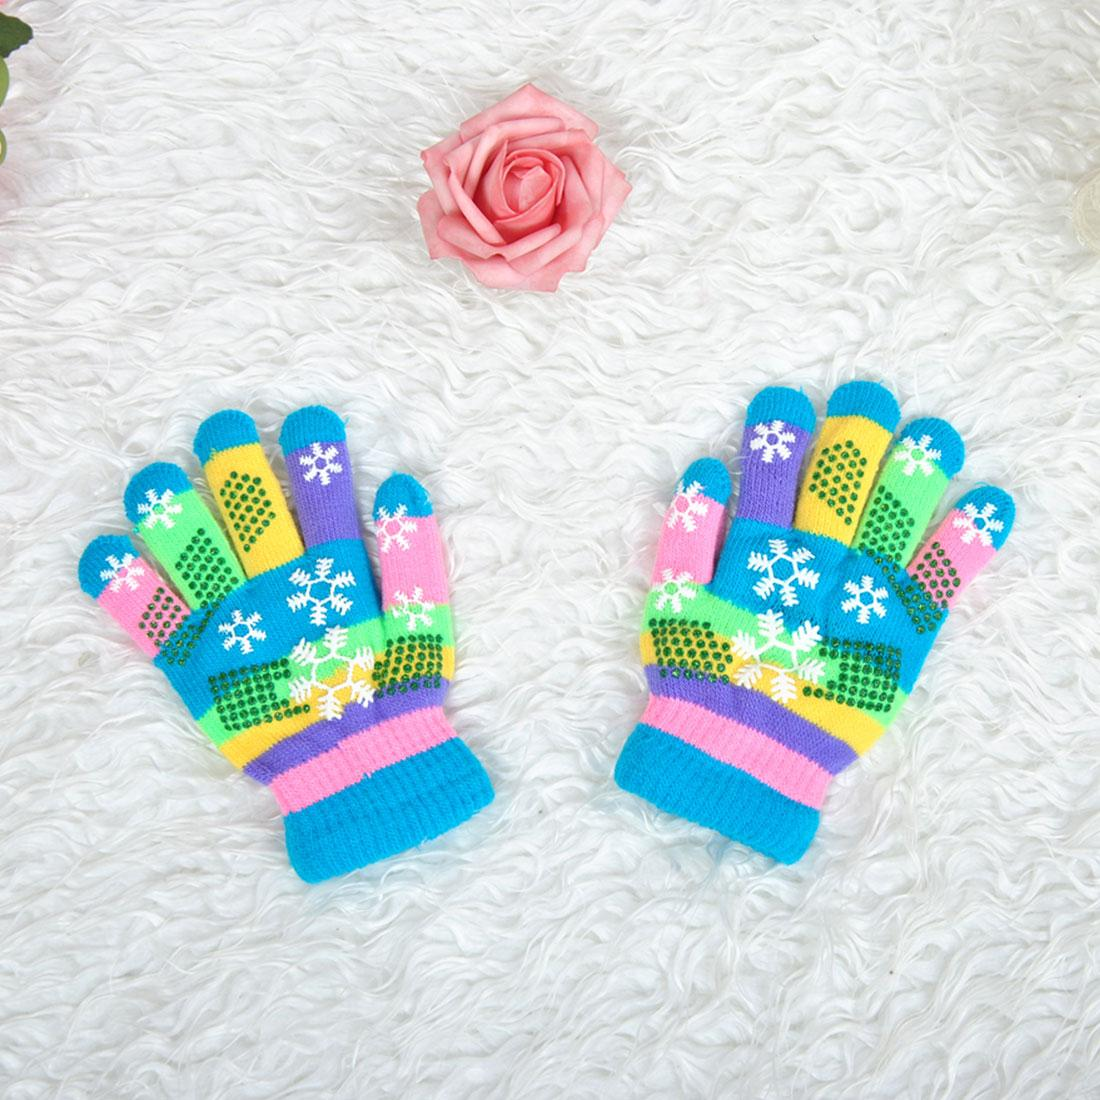 charming winter fashion children bi layer thickened warm snow print xmas colored yarn knit gloves random color s m l knit childrens mittens easy pattern